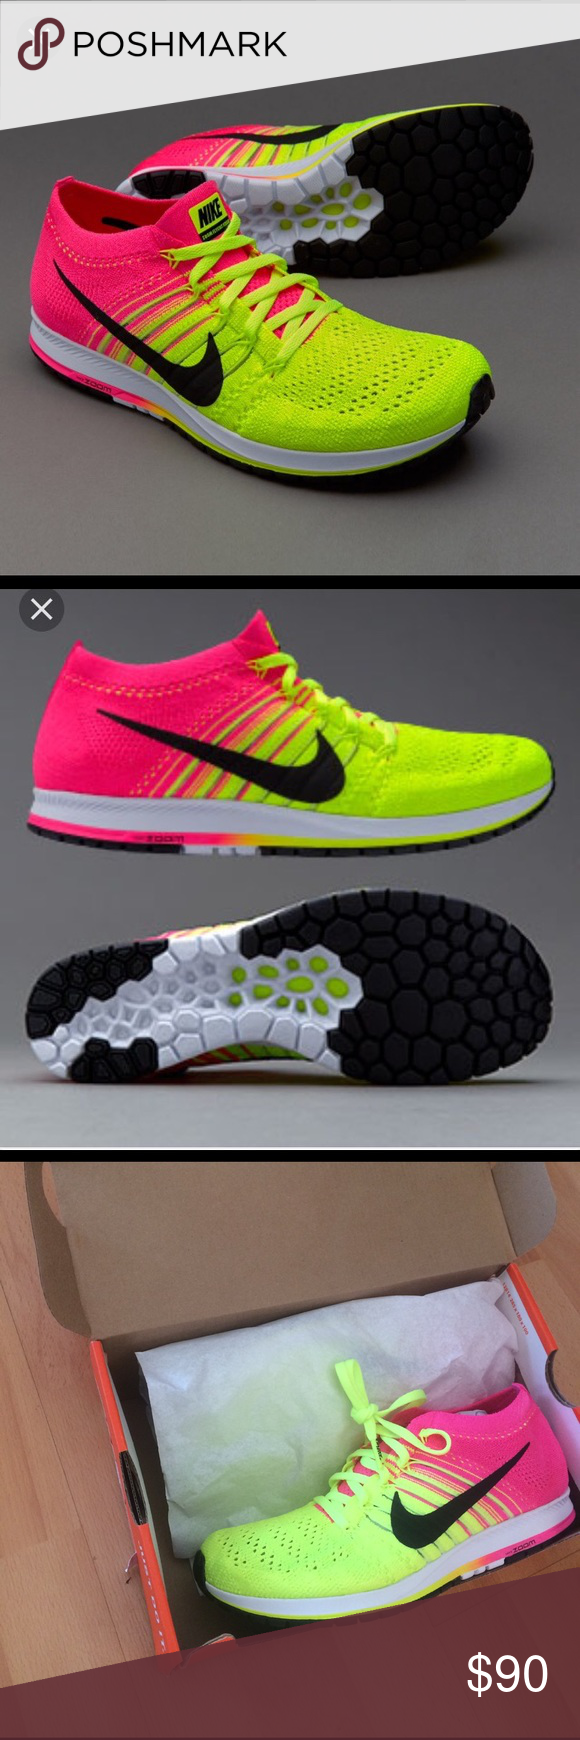 online store 87a8c 0ad29 Nike flyknit streak OC unisex sneaker Nike Flyknit Streak OC unisex  athletic shoe. Multicolor pink yellow black. These shoes are so lightweight  and ...